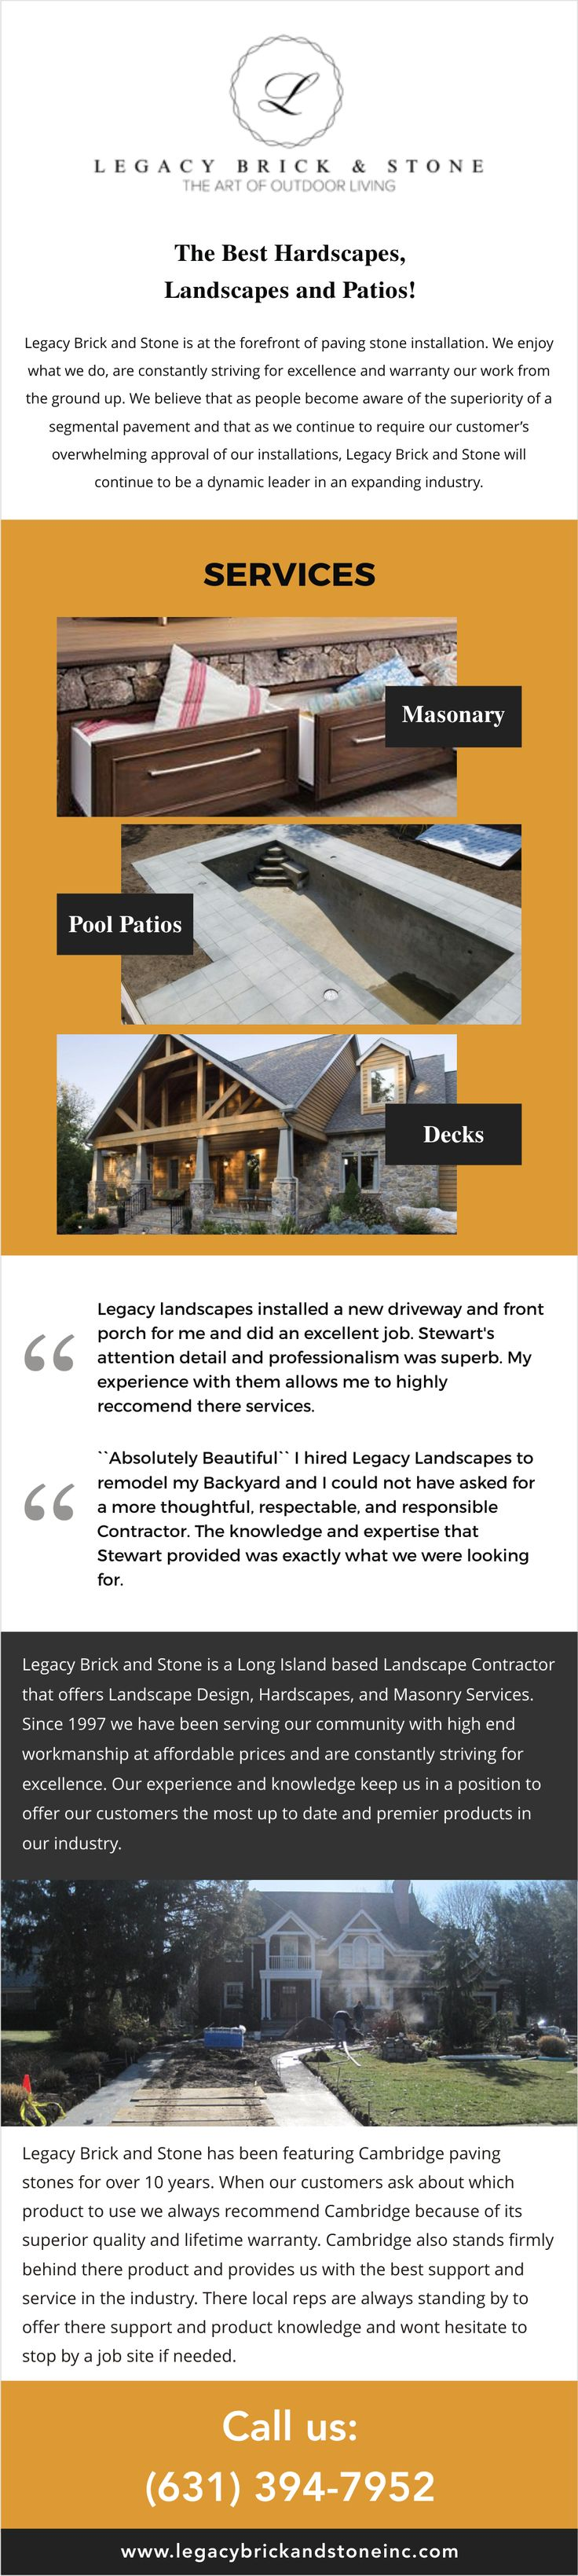 Legacy Brick and Stone Inc. (http://legacybrickandstoneinc.com) offers a full-service masonry and paving stone installation; we are known for our impeccable service and superior workmanship to all our clients, whether residential or commercial. We have solidified our reputation in the construction industry and we are among the leading custom builders and commercial contractors that home and business owners contest for all their needs.